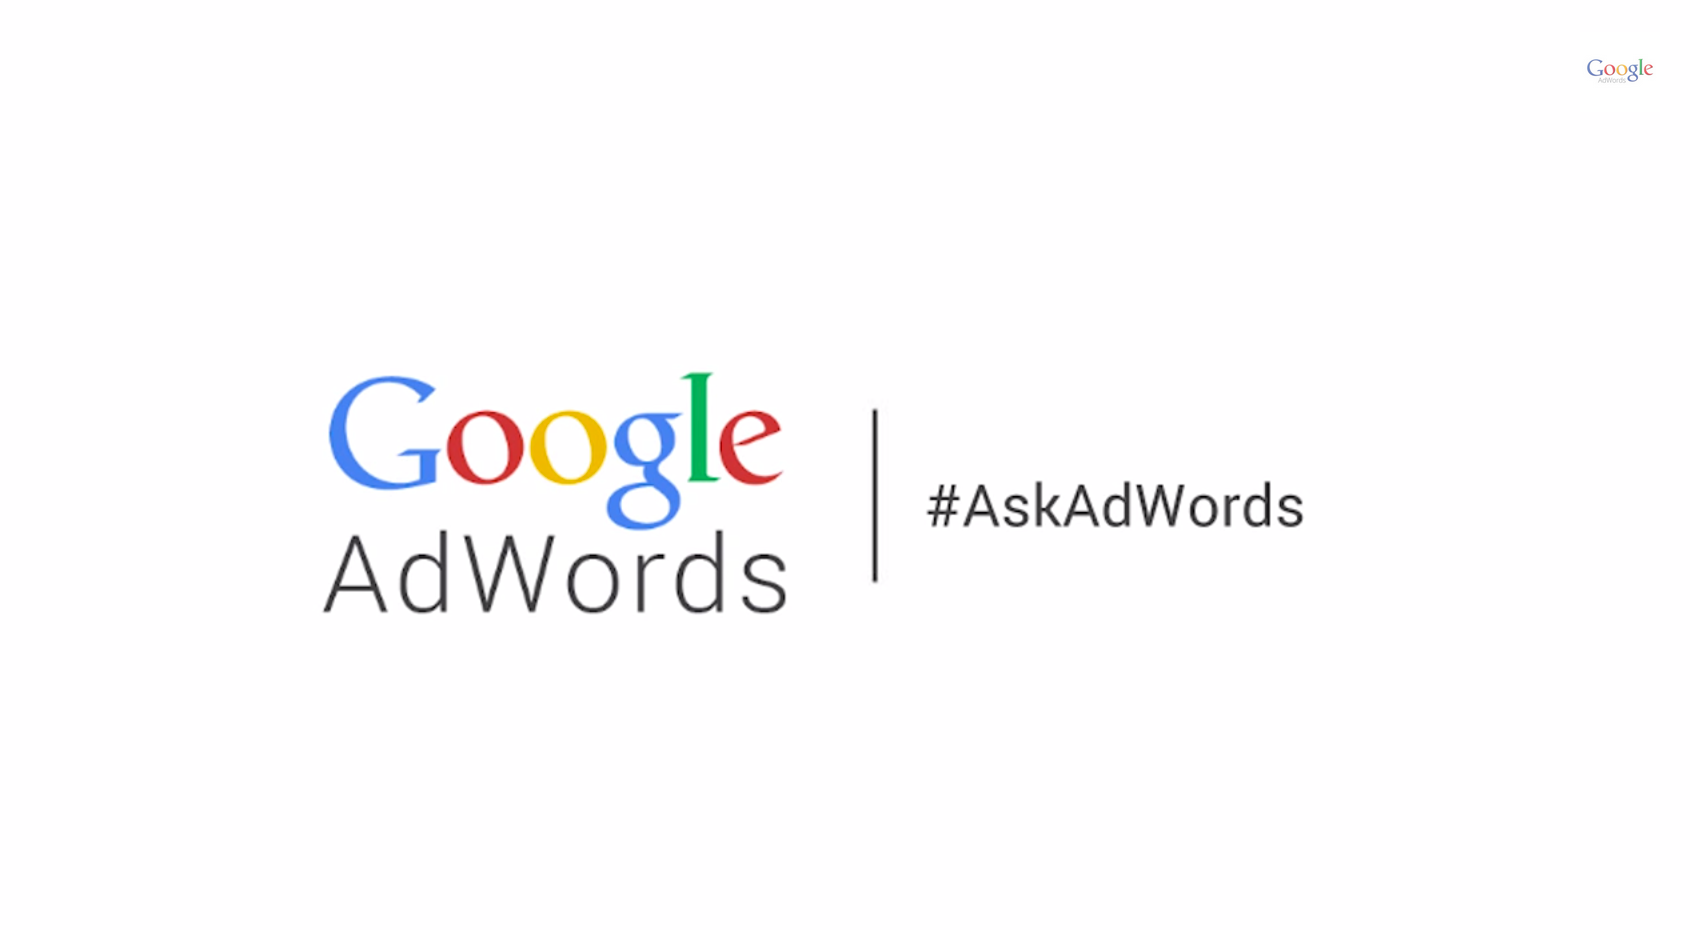 Logotipo Google Adwords